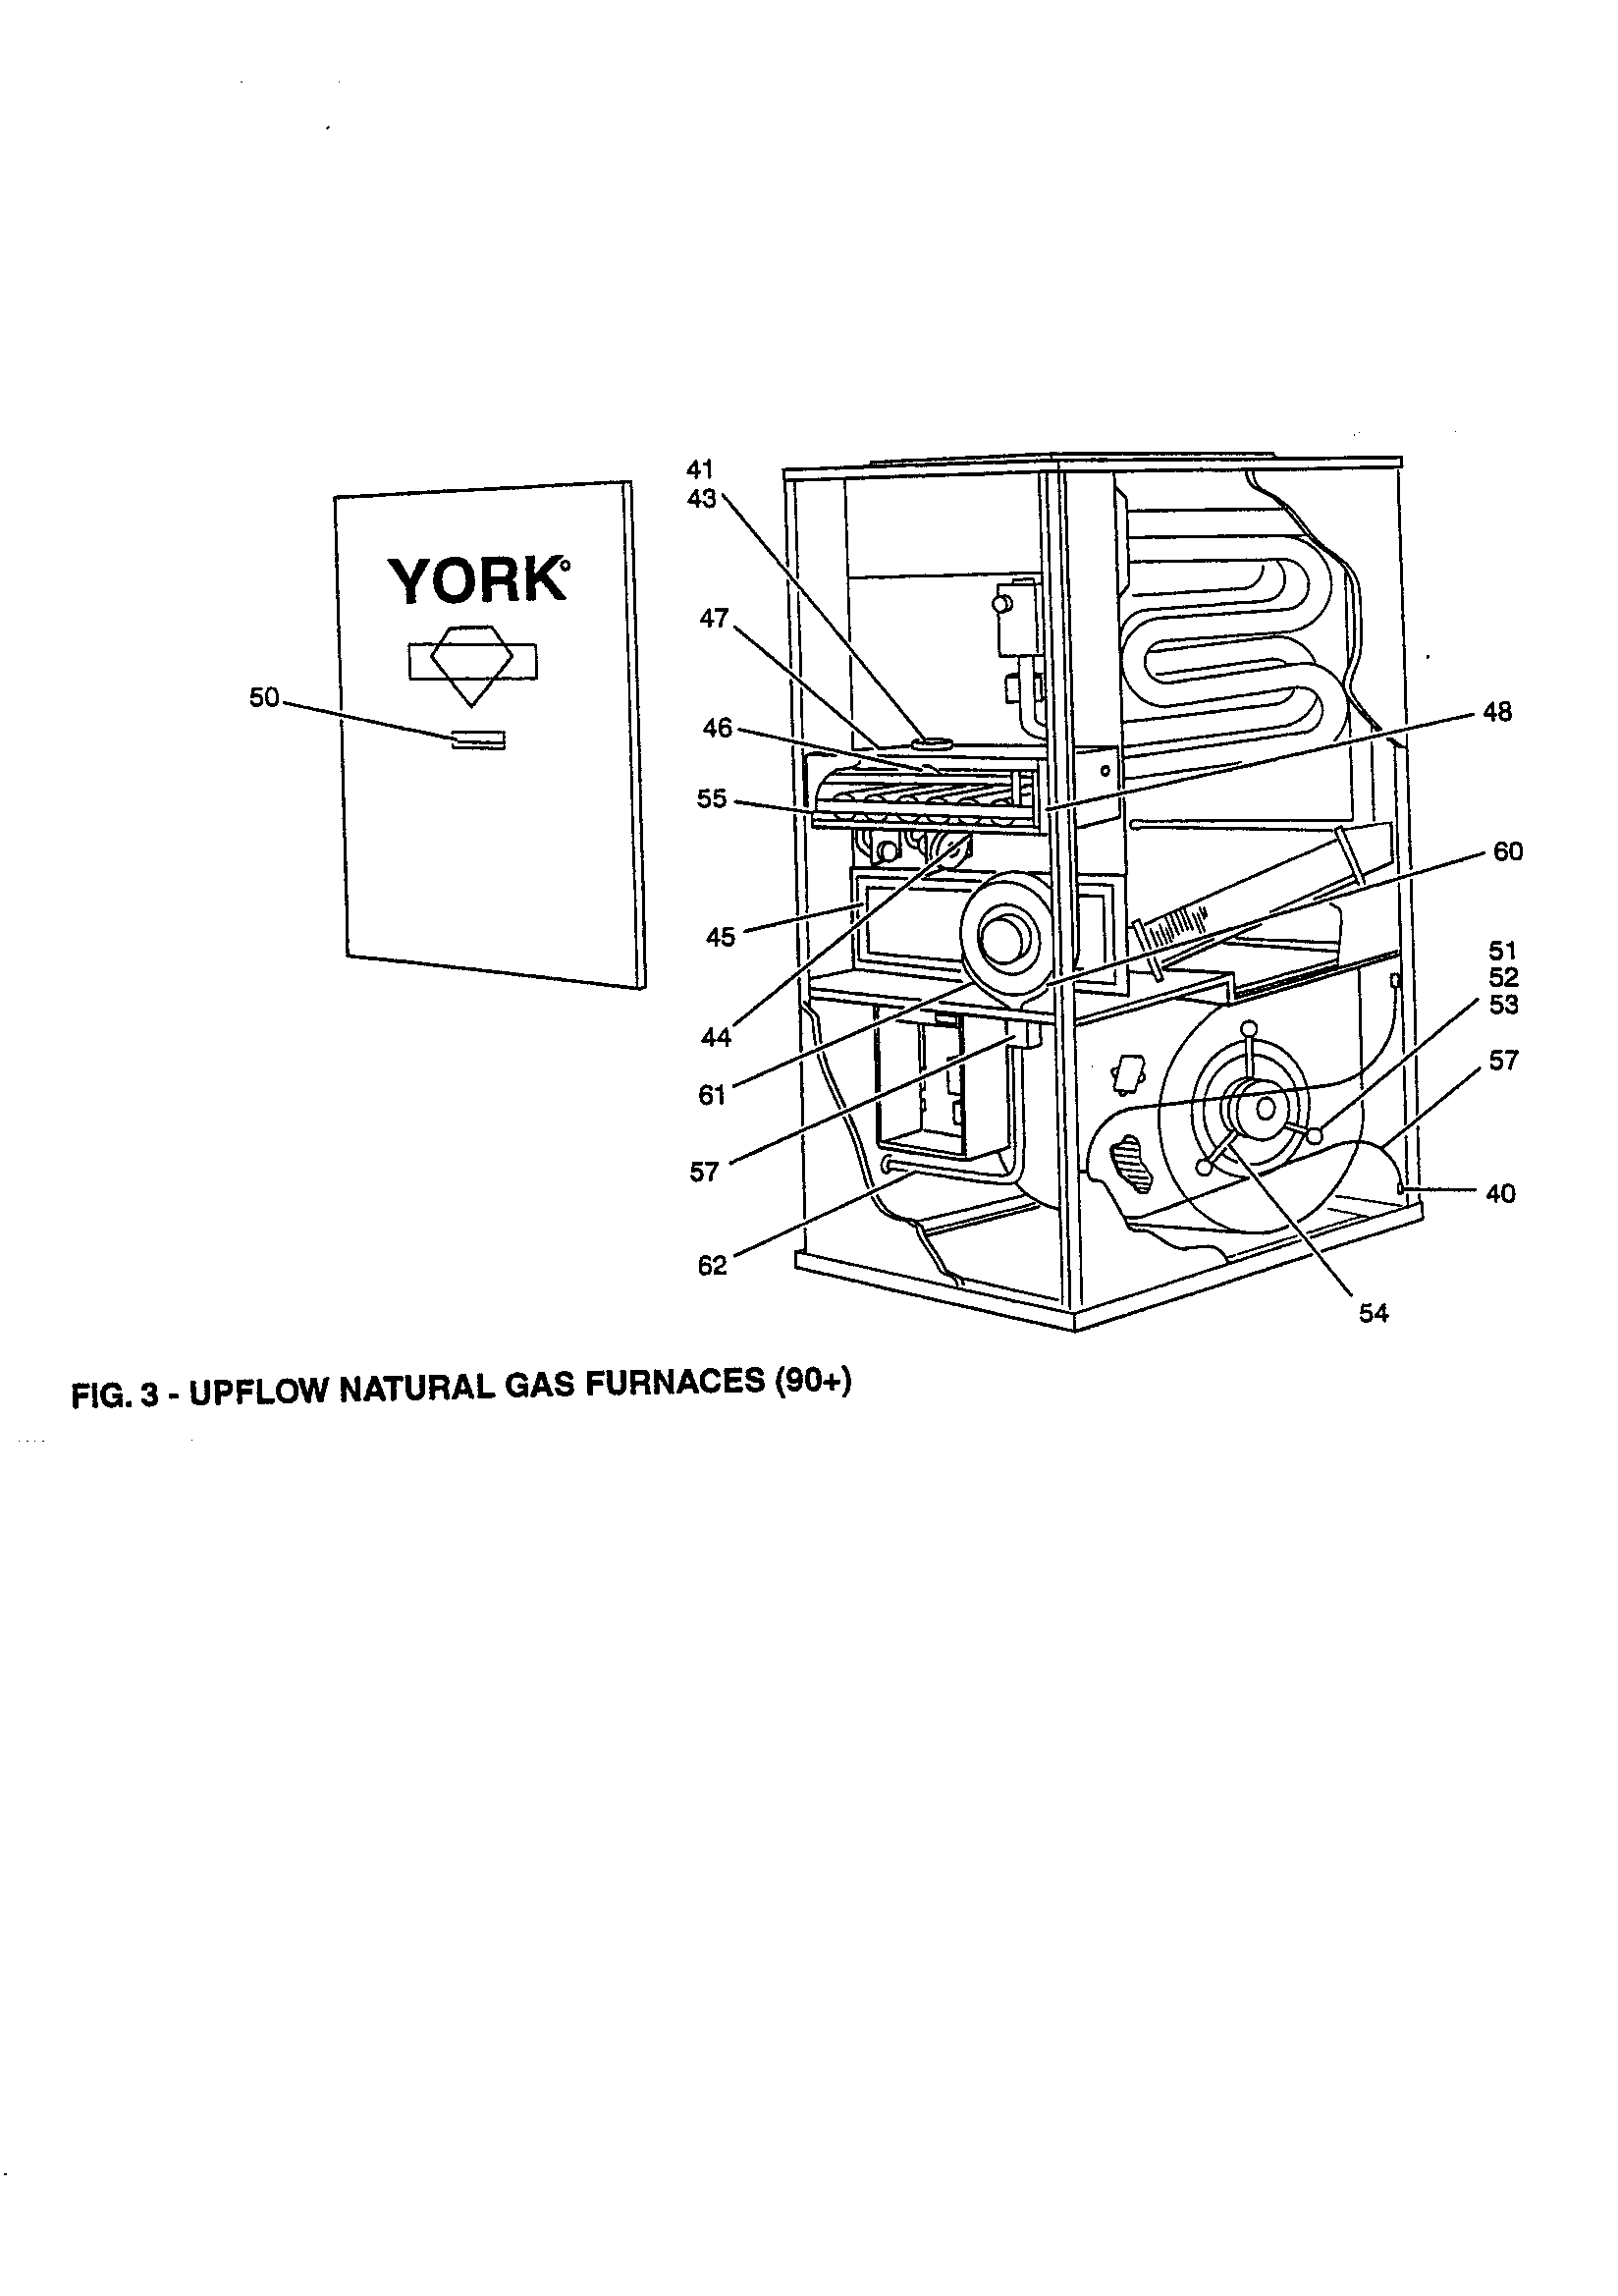 York model P3URC20N09501C furnace/heater, gas genuine parts